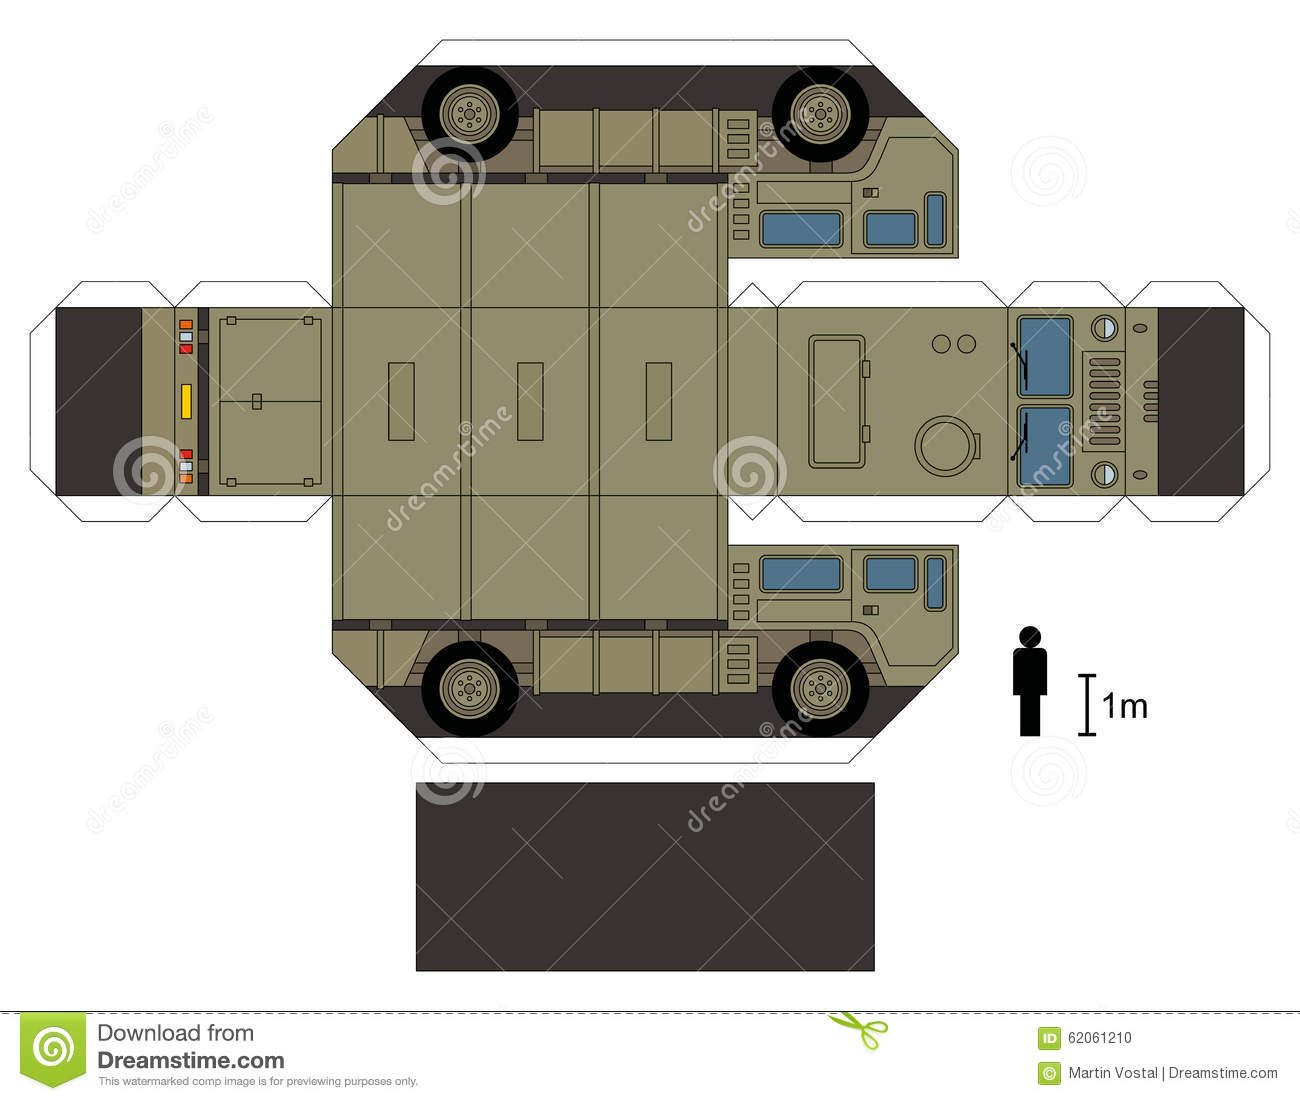 trucks vs cars essay The differences between driving your private car and taking buses were well adapted in the essay you compared these two in many logical aspects briefly, the structure of your essay is favorable for a comparison/contrast essay, i think.